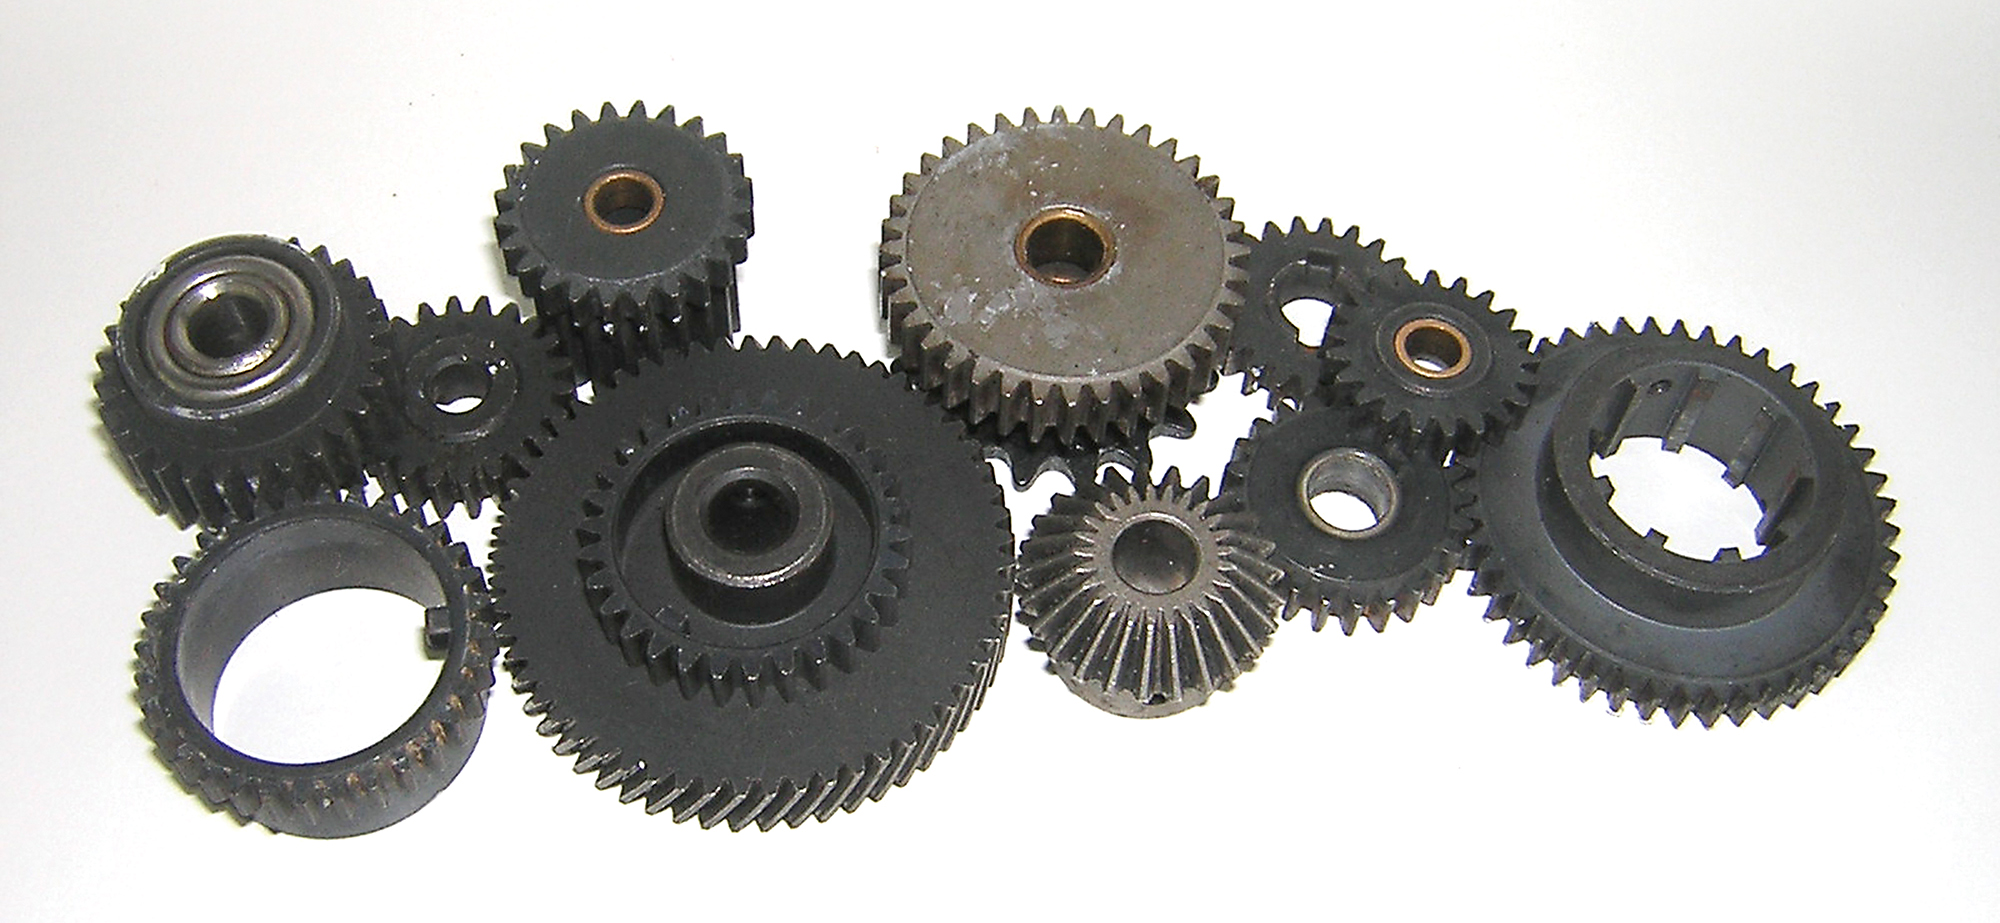 How to Pick the Right Gear Ratio for Your Needs | Articles